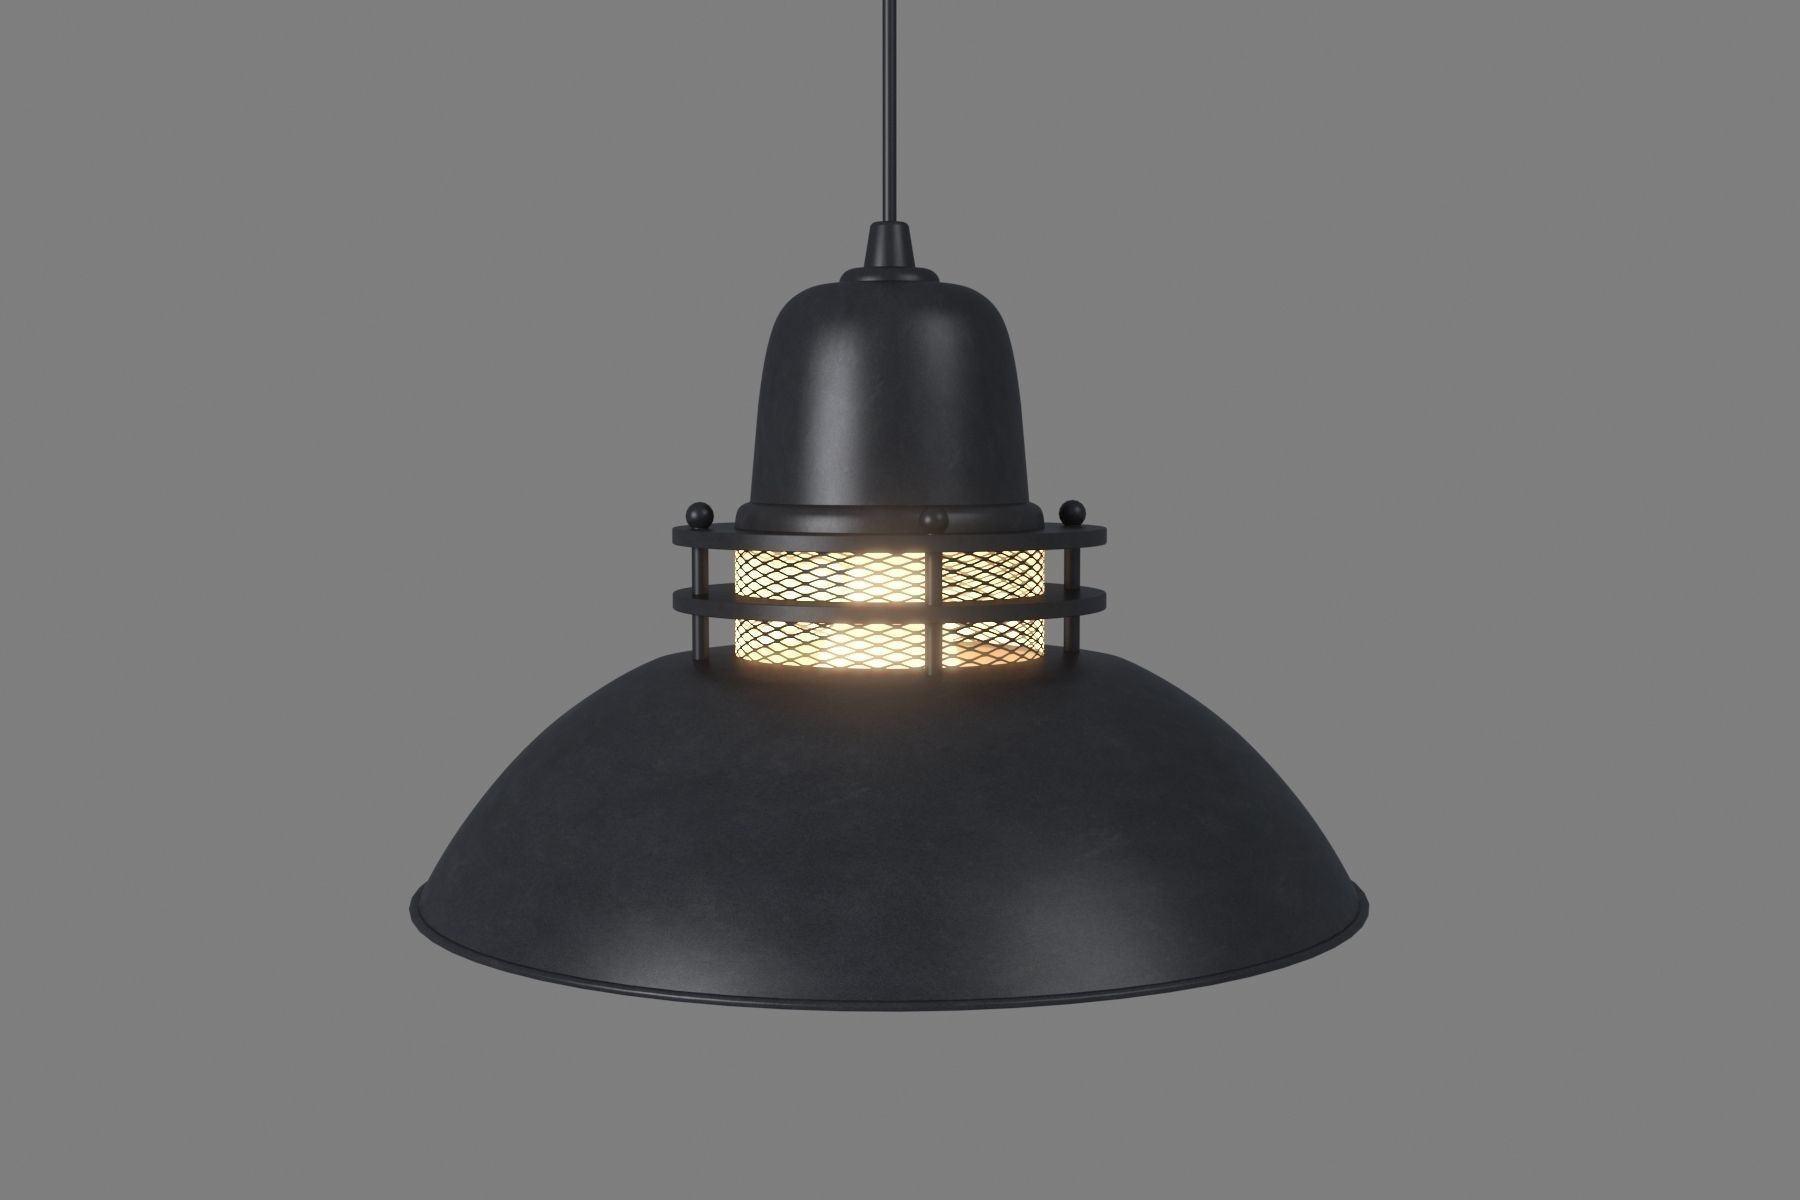 Anthracite Pendant Lamp With Mesh